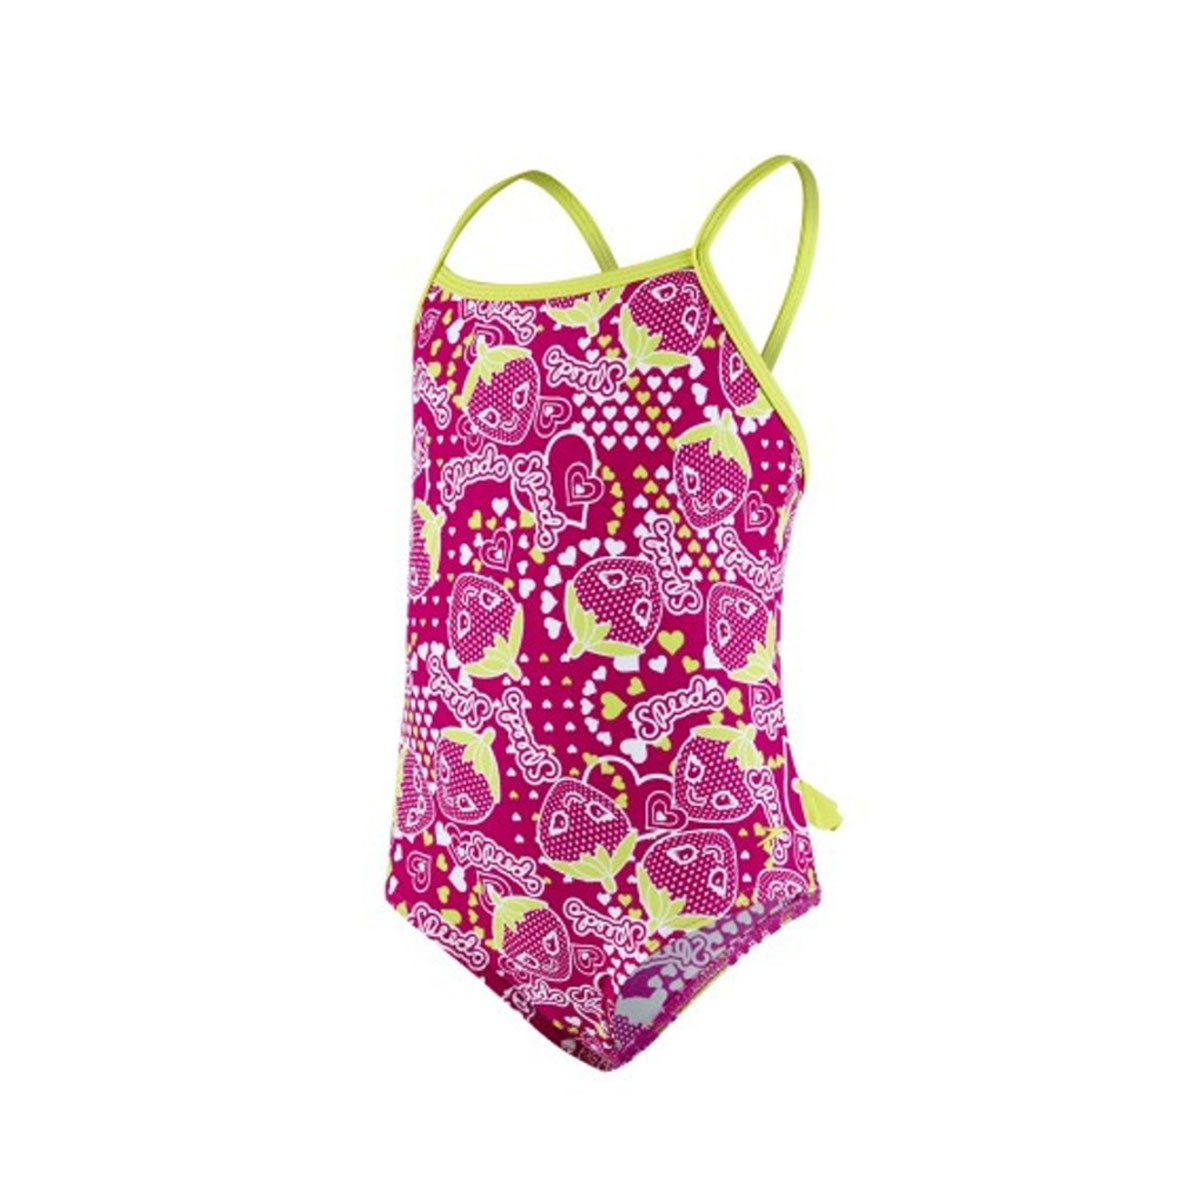 SPEEDO STARFIZZ ESSENTIAL FRILL 1 PIECE 8-07972B845 Φούξια bebe   ενδύματα   μαγιό